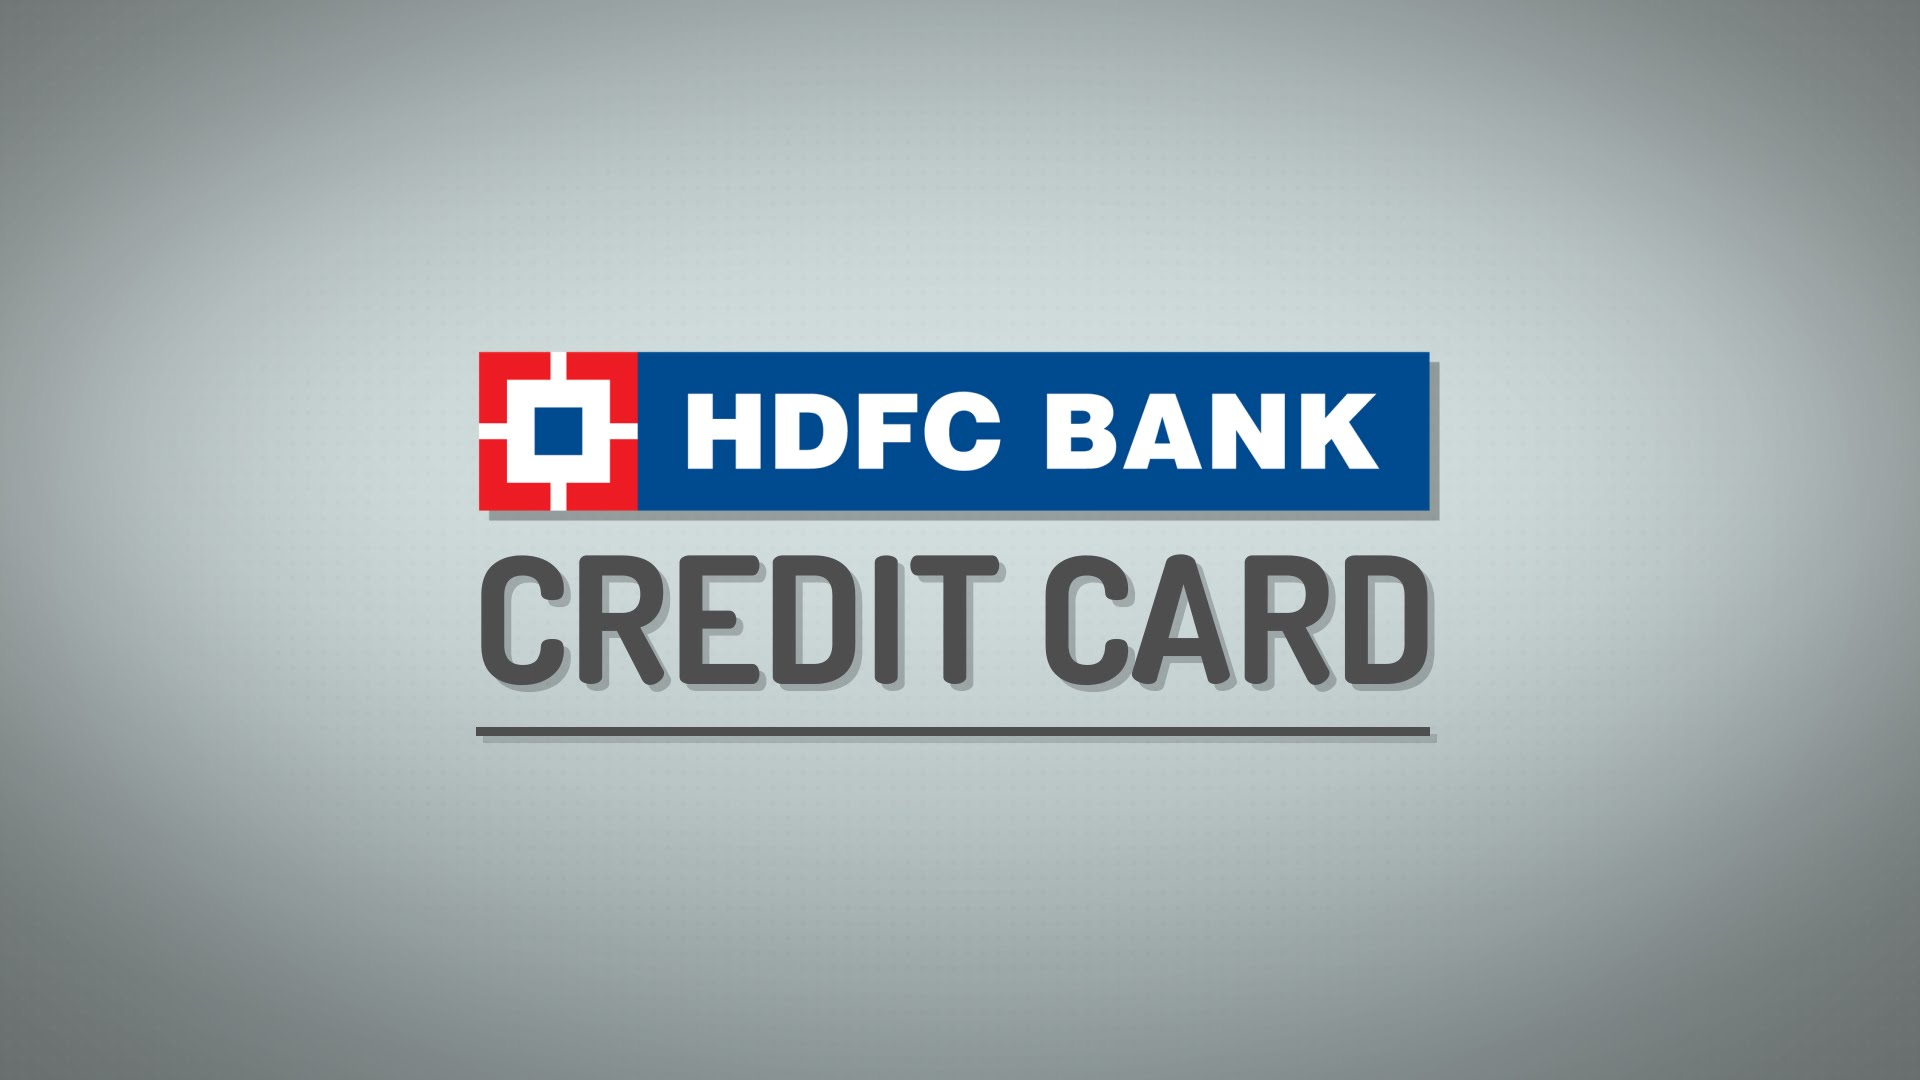 Tracking HDFC Bank Credit Card Status & HDFC Credit Card Application